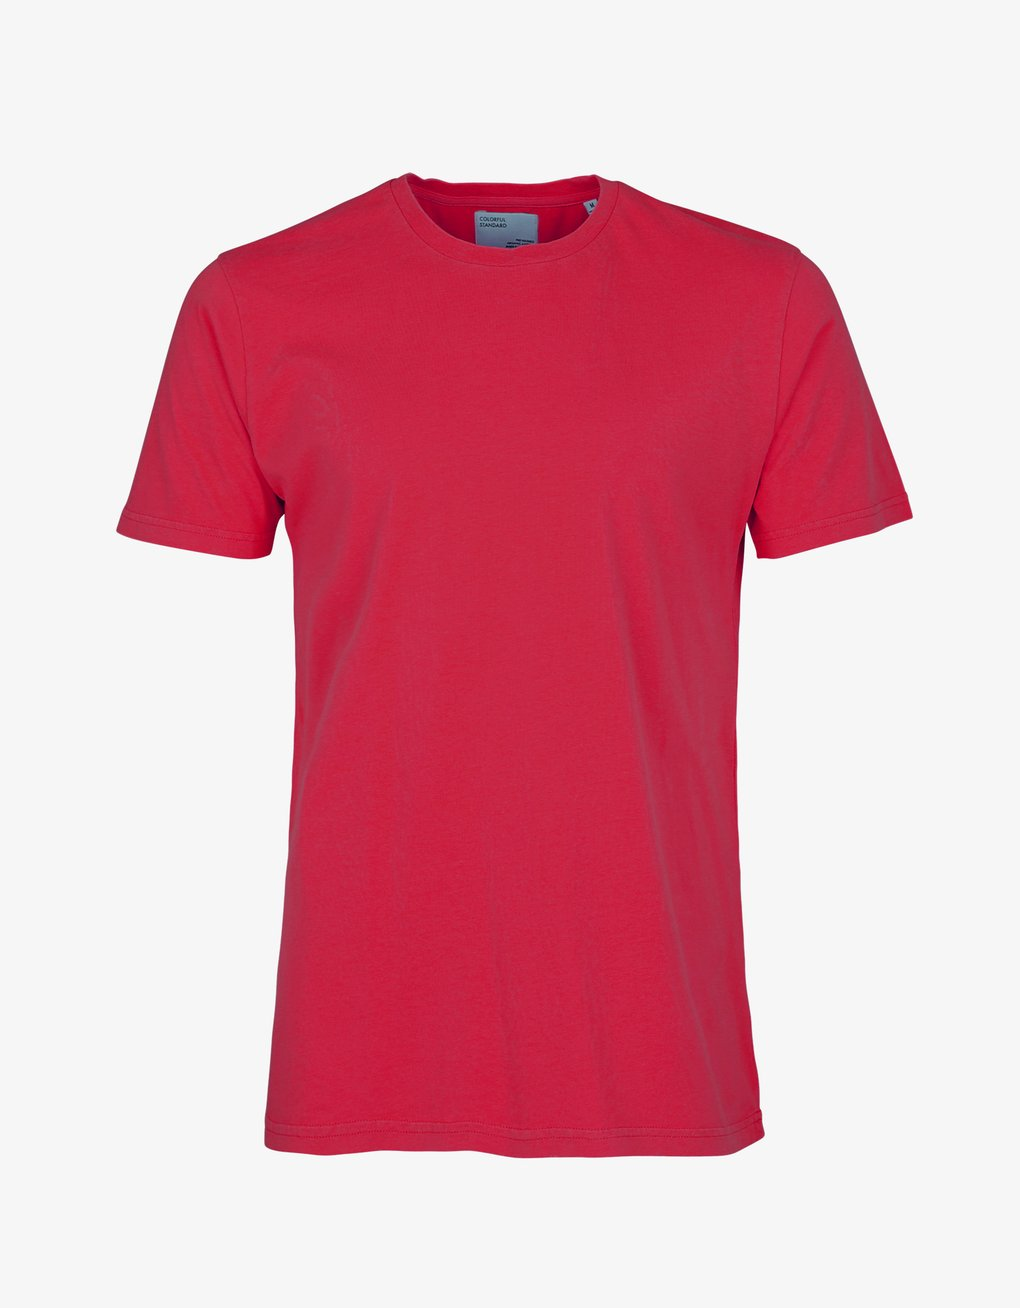 COLORFUL STANDARD | Classic Organic T-shirt | Scarlet Red - LONDØNWORKS